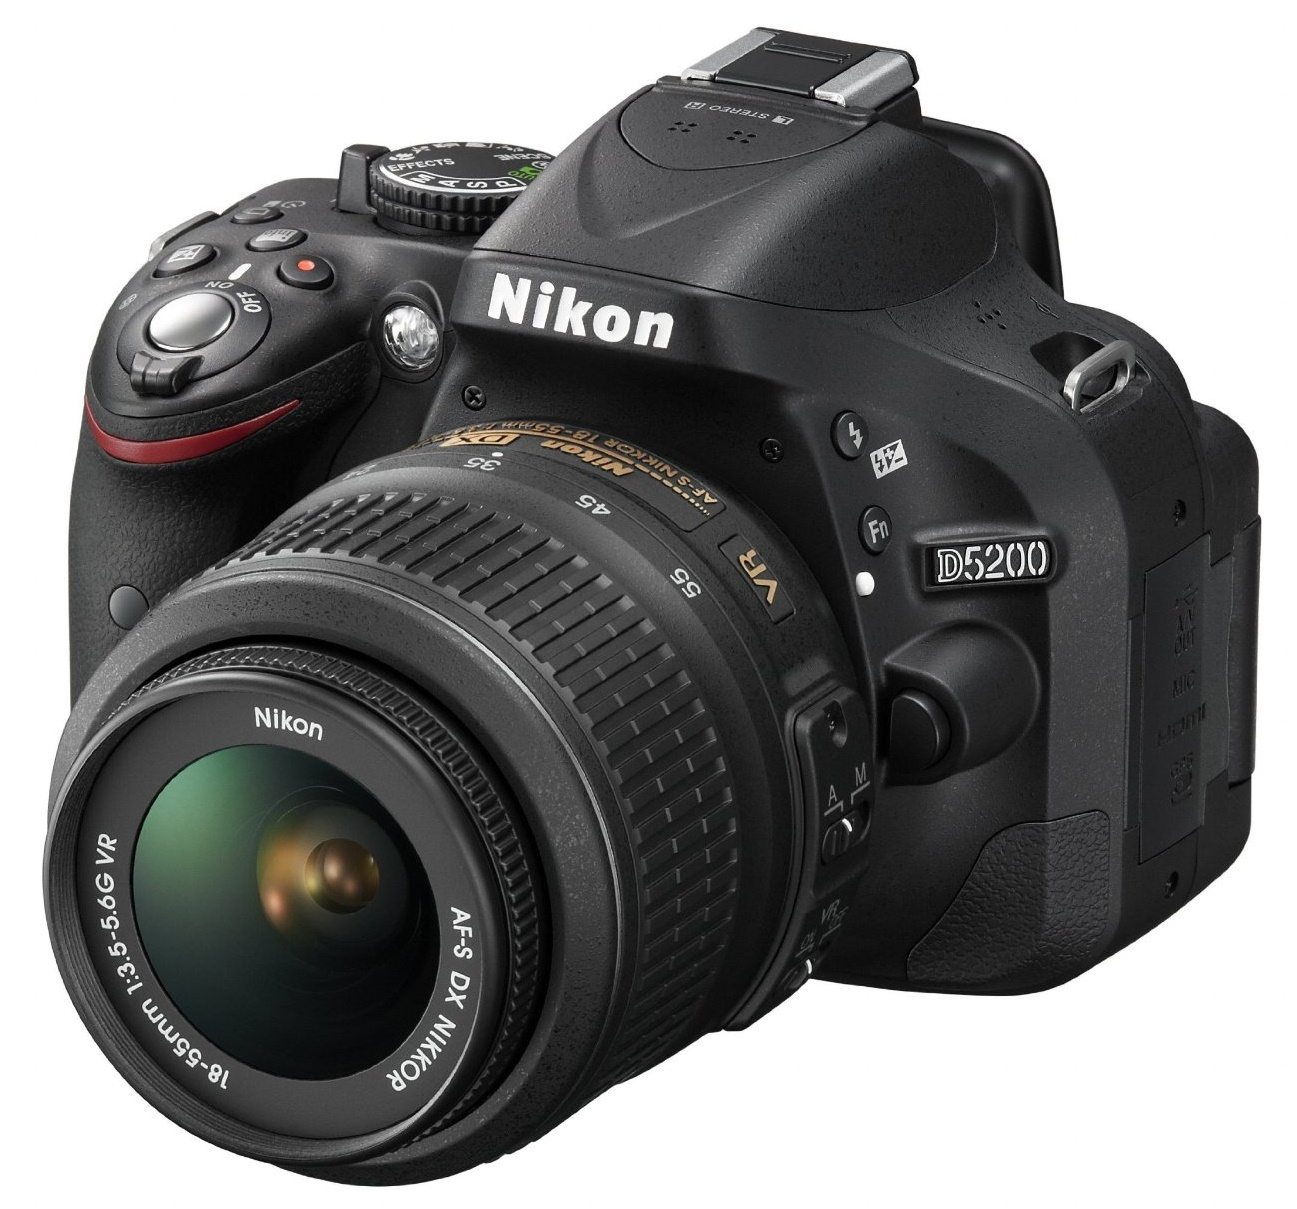 Nikon D5200 Best DSLR Camera for Beginners